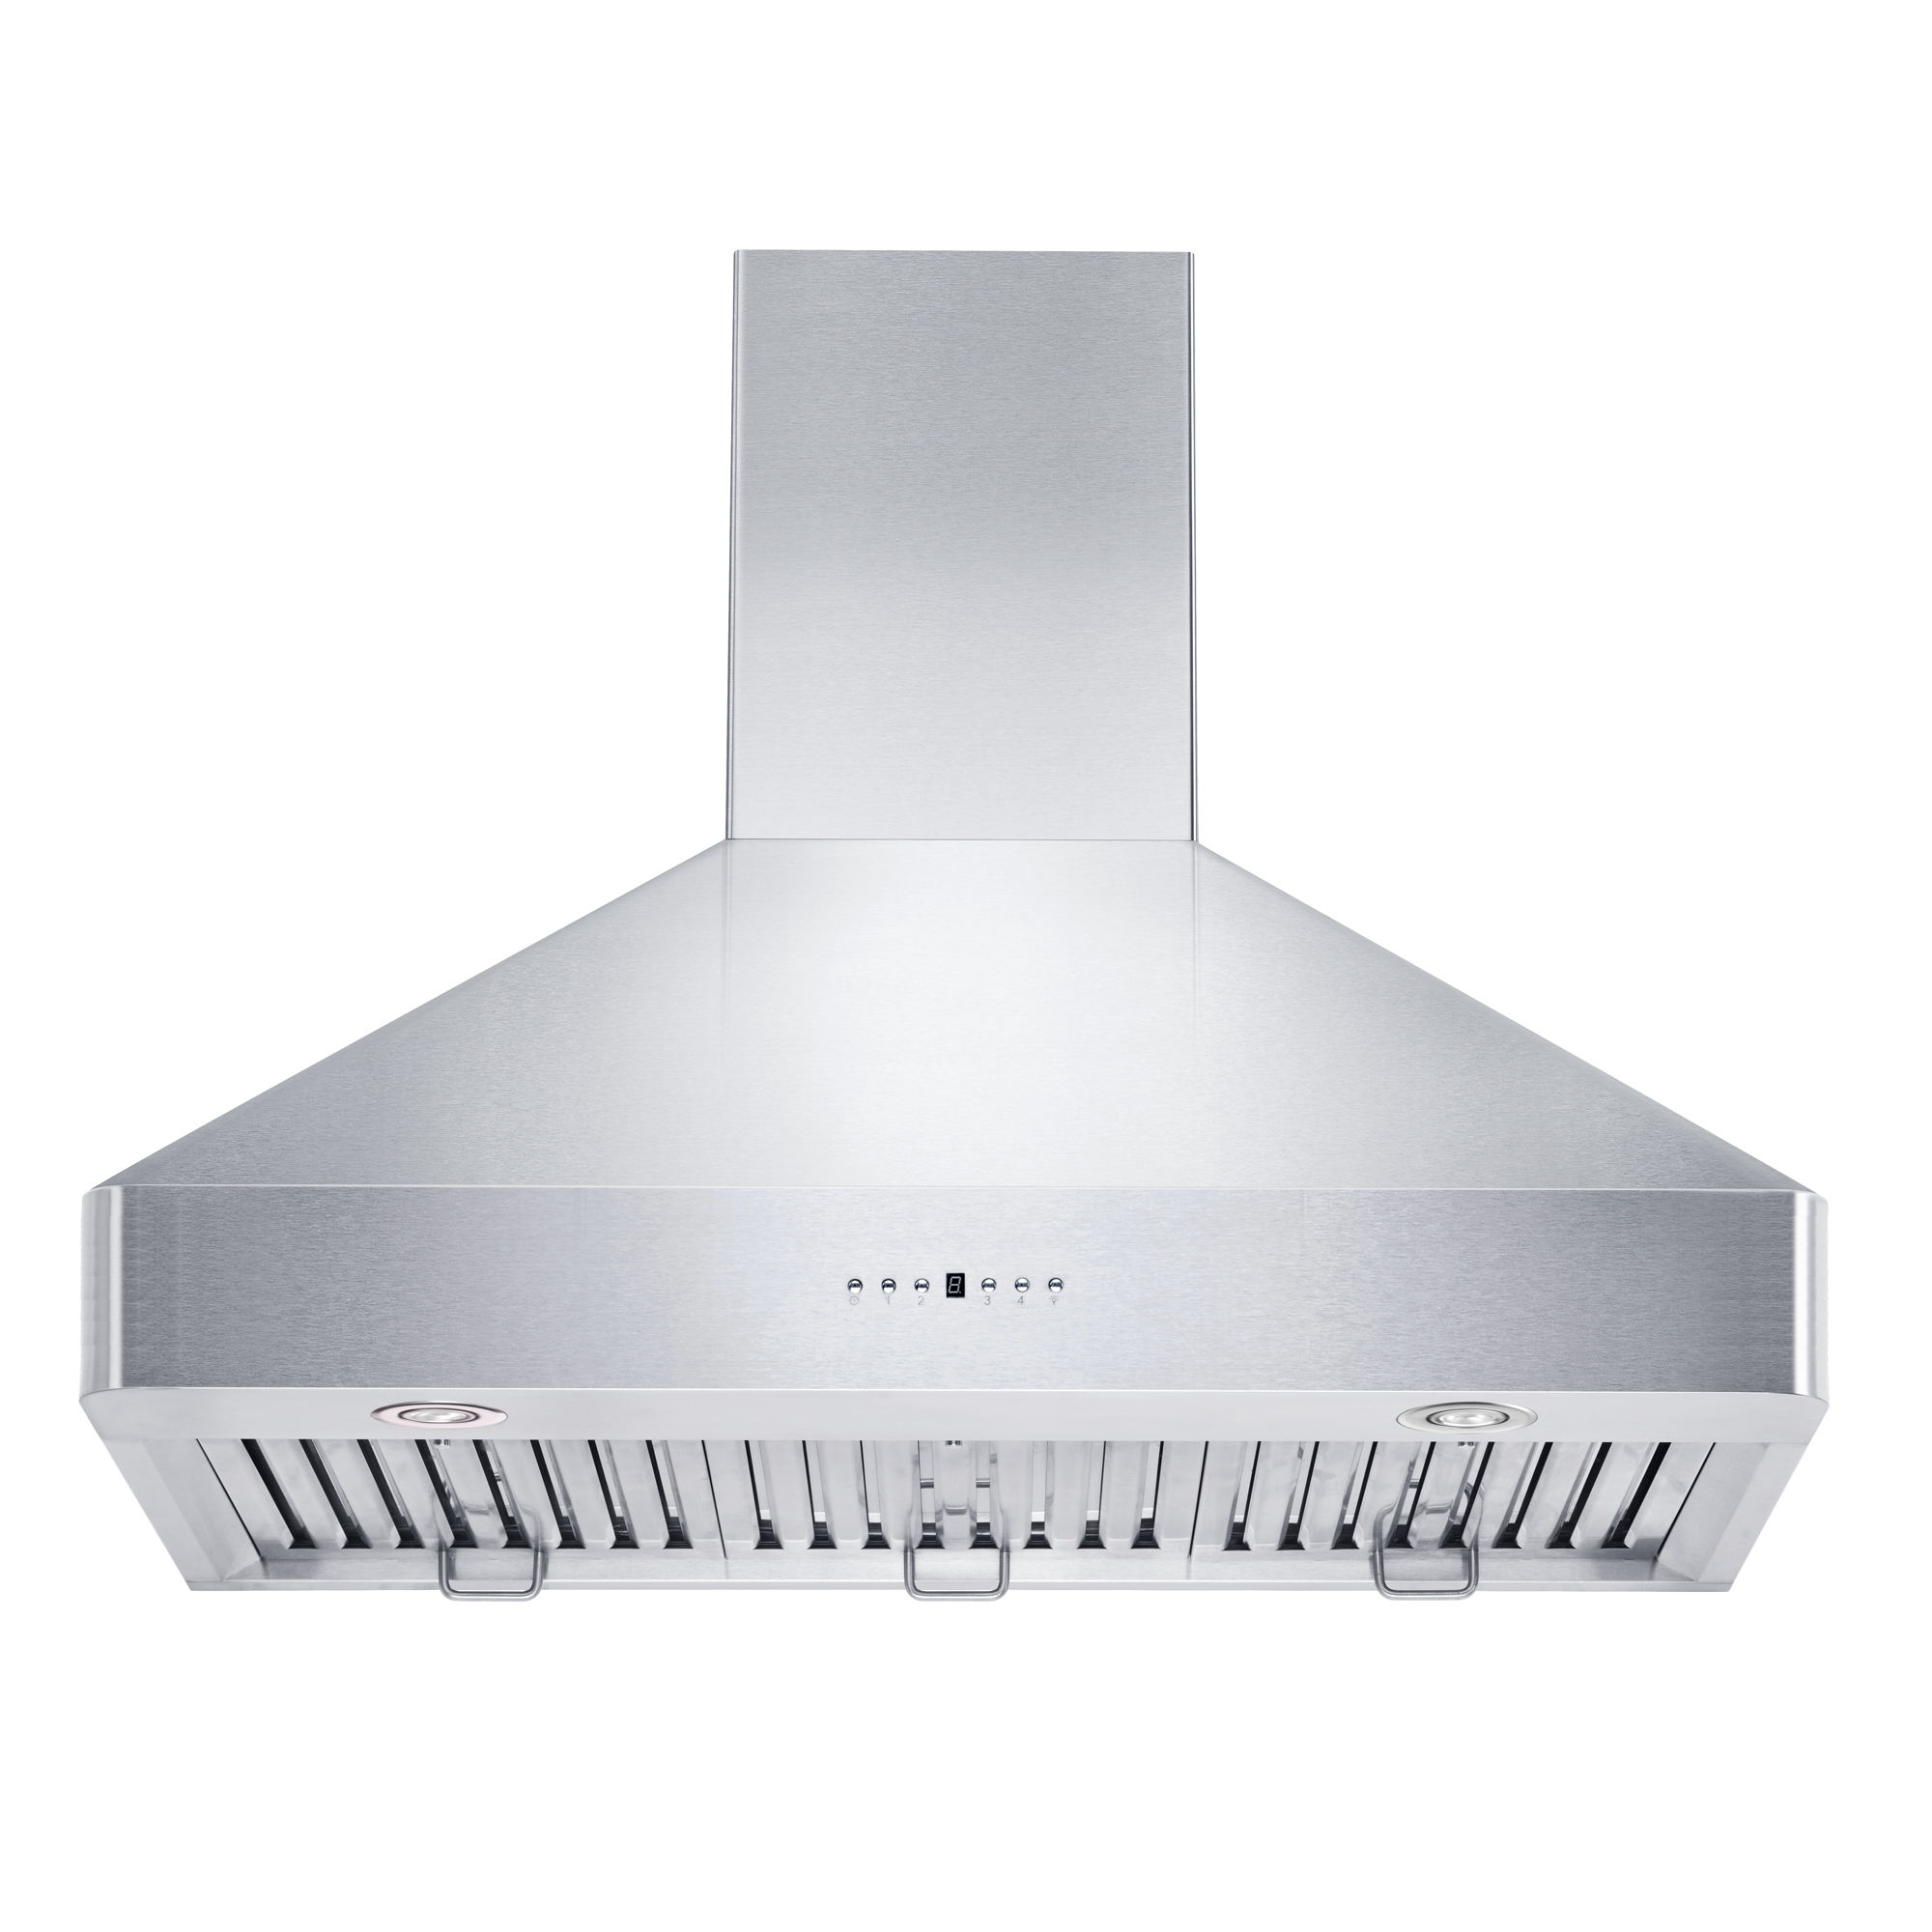 zline-stainless-steel-wall-mounted-range-hood-kf2-new-under.jpg